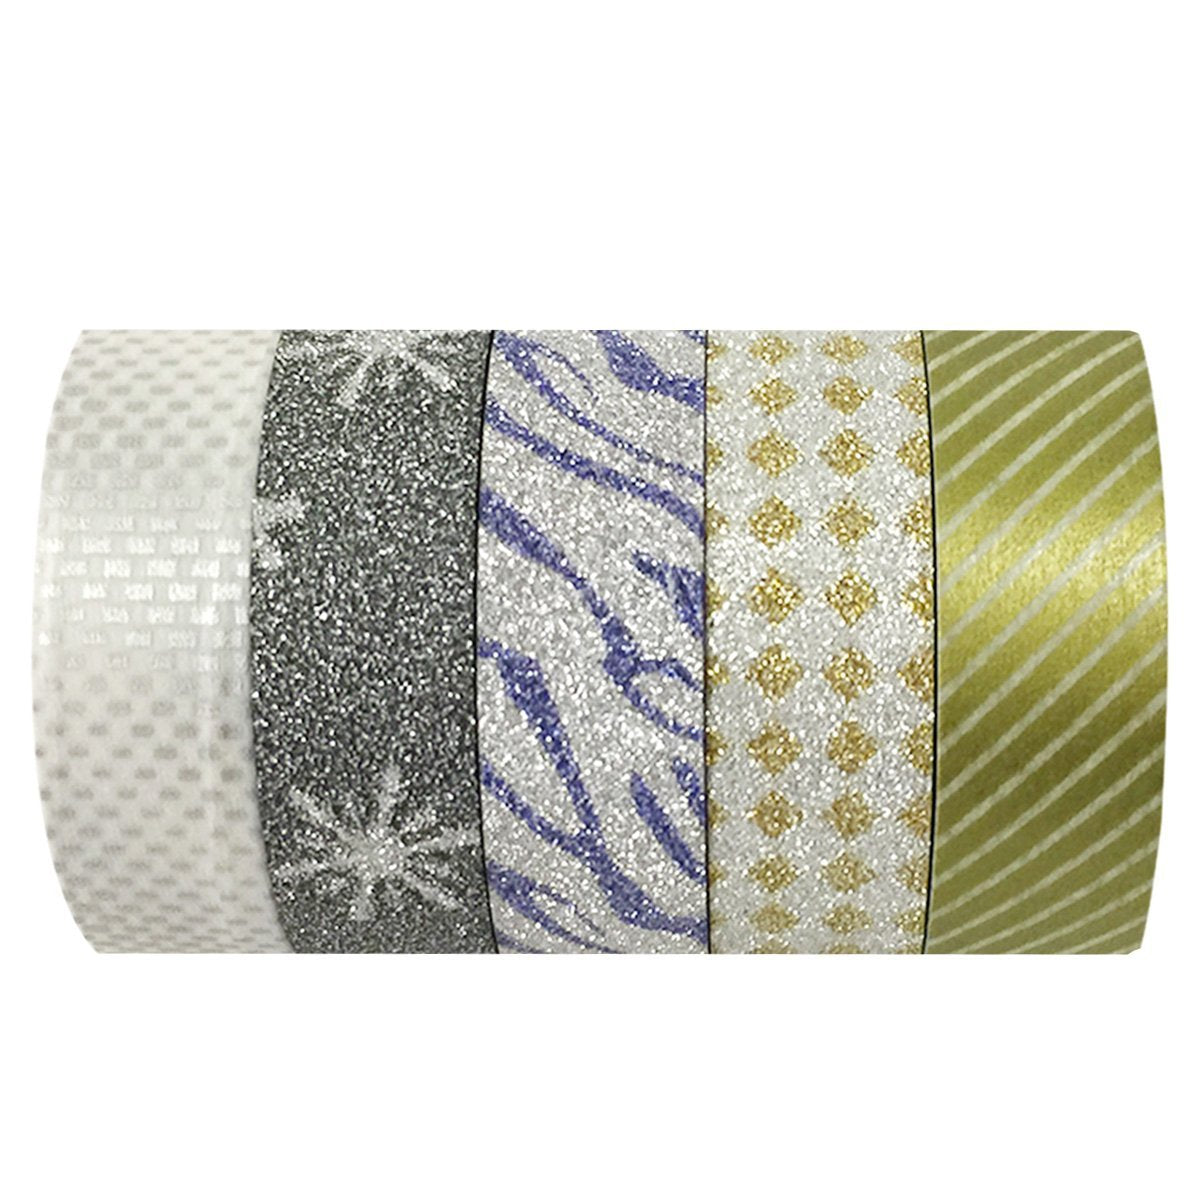 Wrapables Silver and Gold Washi Tapes Masking Tapes, Set of 5